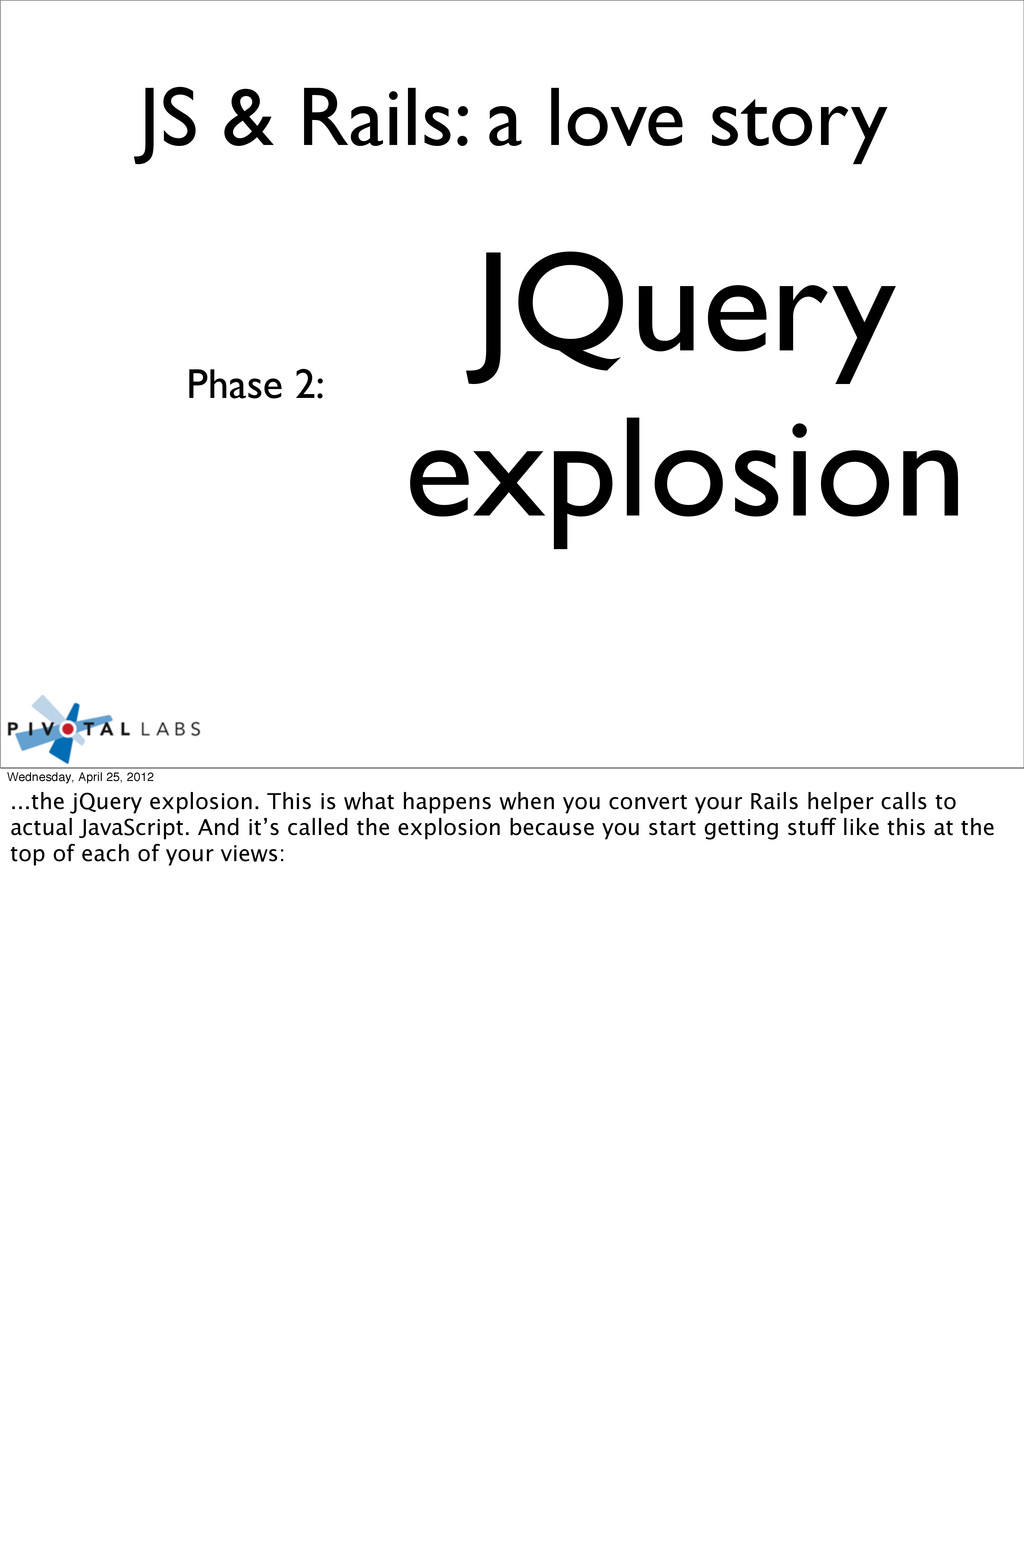 JQuery explosion Phase 2: JS & Rails: a love st...